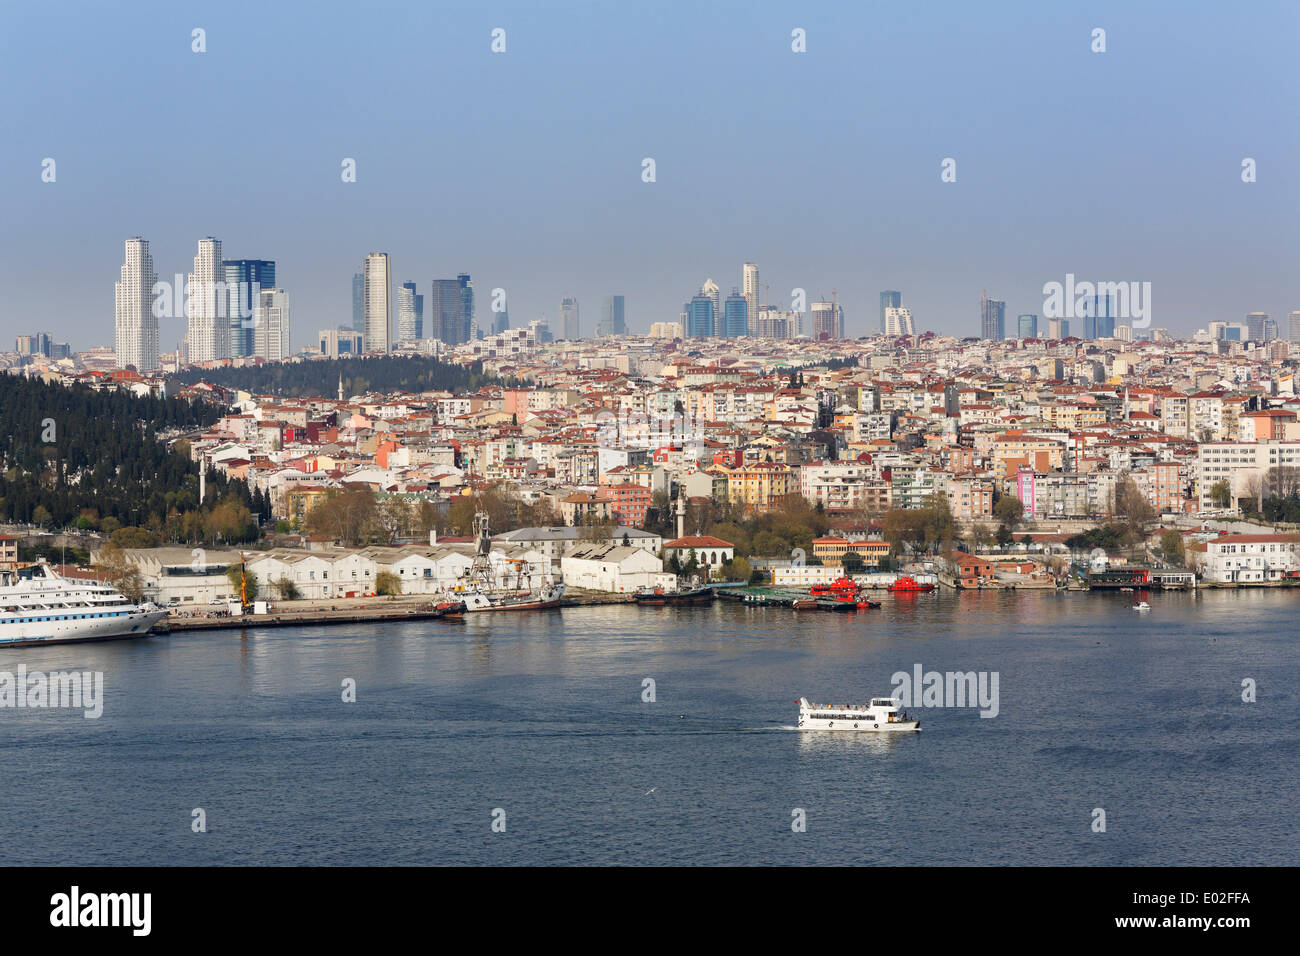 The Golden Horn with the districts of Beyoglu and Sisli, from Fener quarter, Istanbul, European Side, Turkey - Stock Image